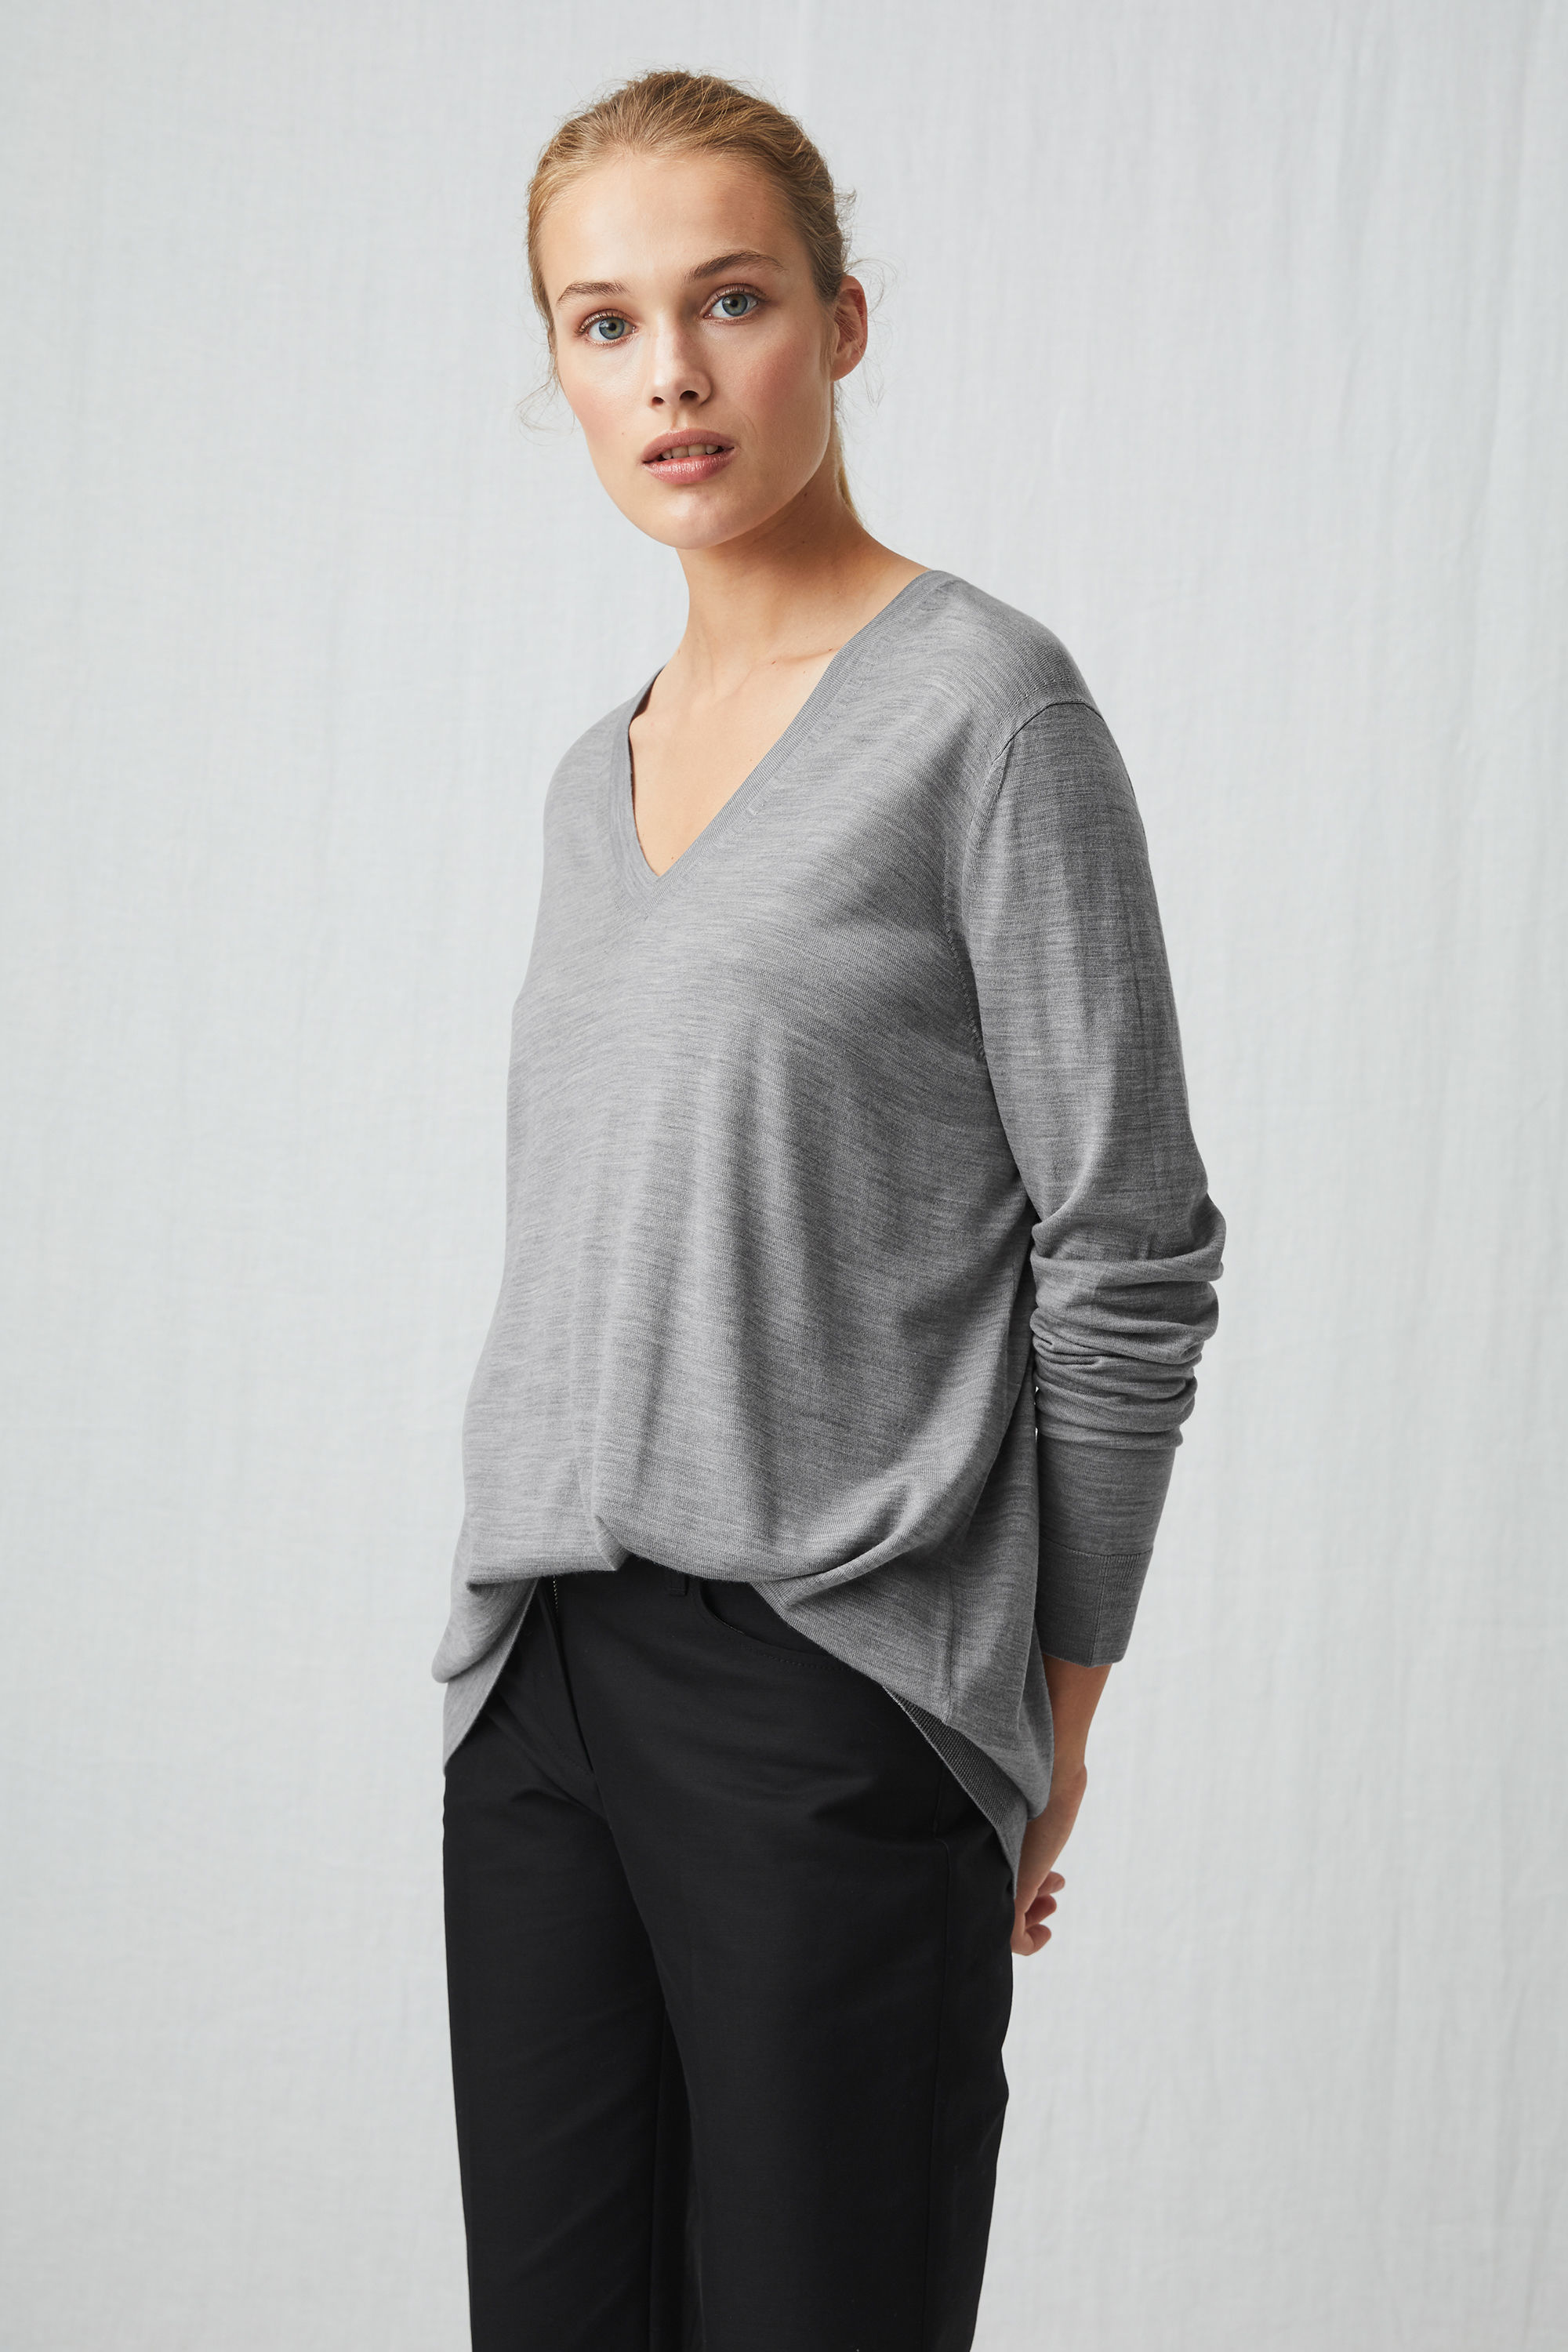 arket merino relaxed v-neck jumper £28, was £55